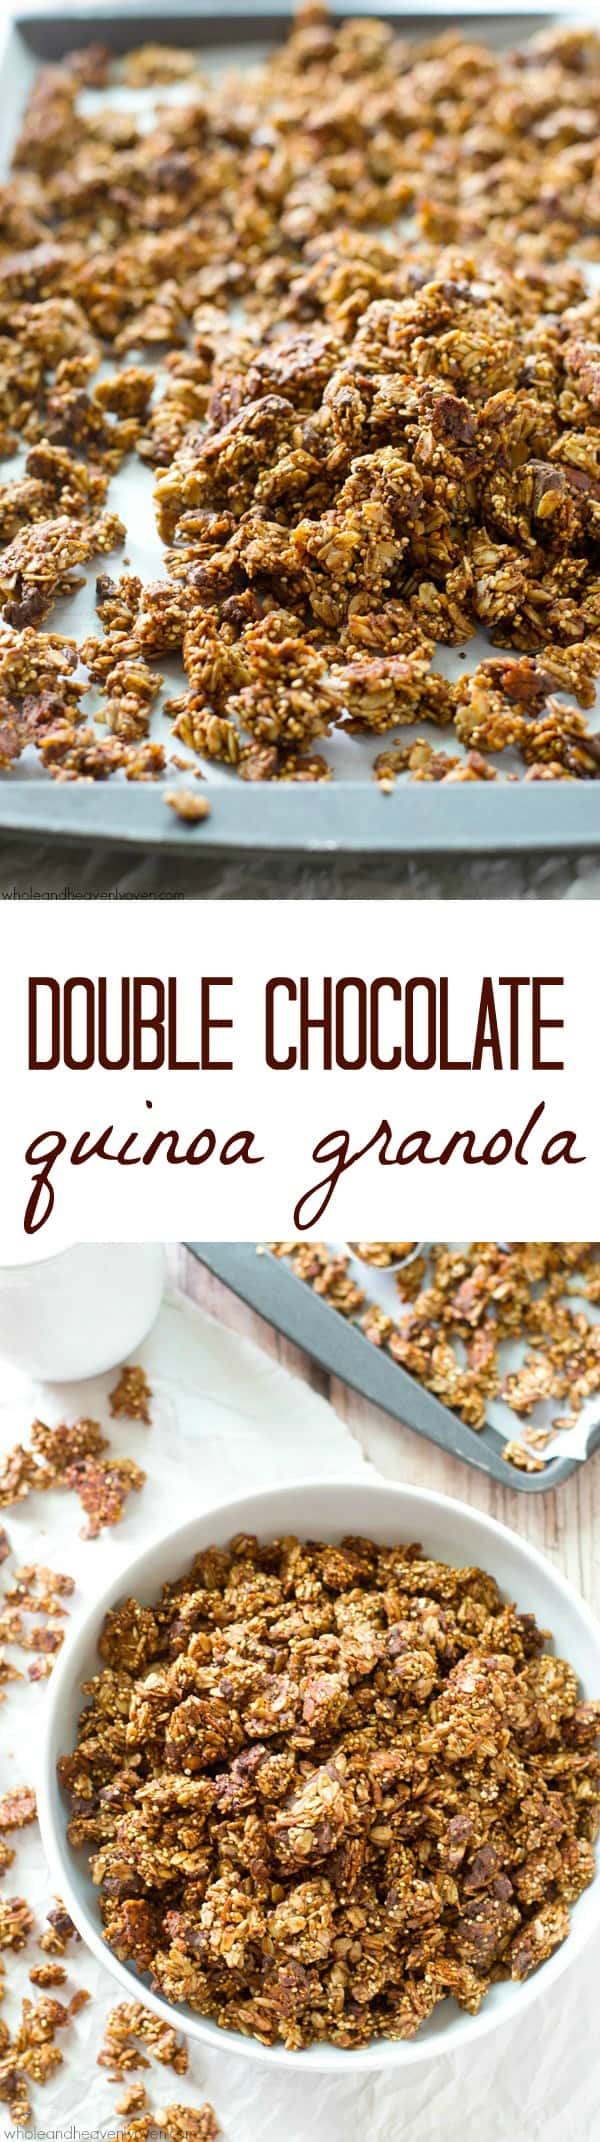 This big, cluster-y granola is loaded with a double-threat of chocolate and perfectly crisp and crunchy thanks to the healthy addition of quinoa.---You'll want to eat this addicting granola by the handful!